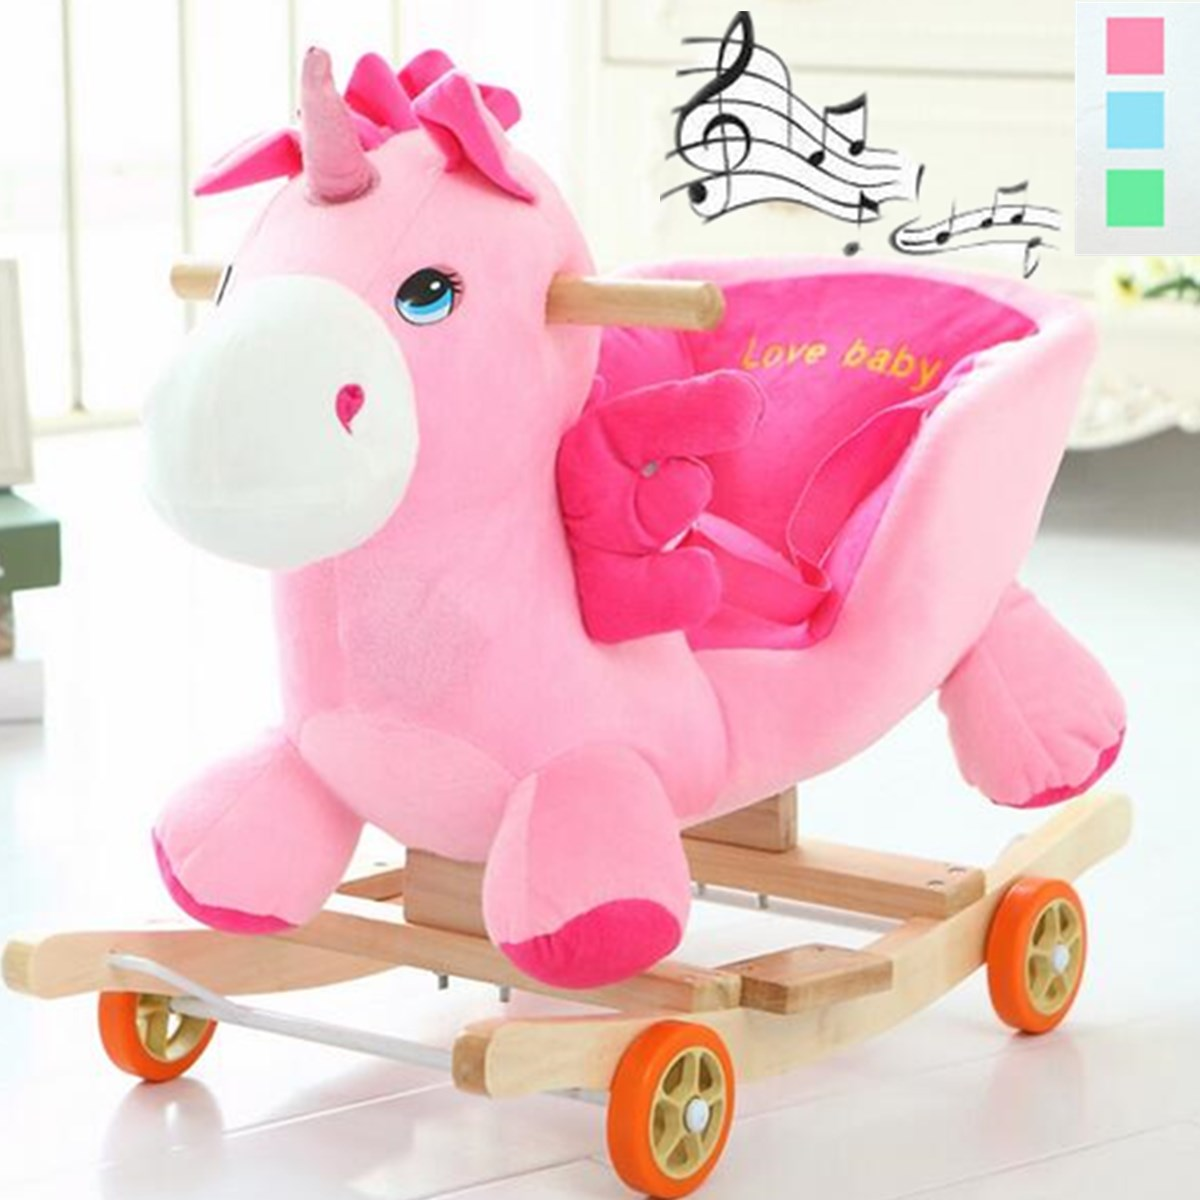 Multi function Wooden Plush Animal Rocking Horse Trojan toy Rocking Chair Baby Carriage Child Trolley With Music Kids Gift